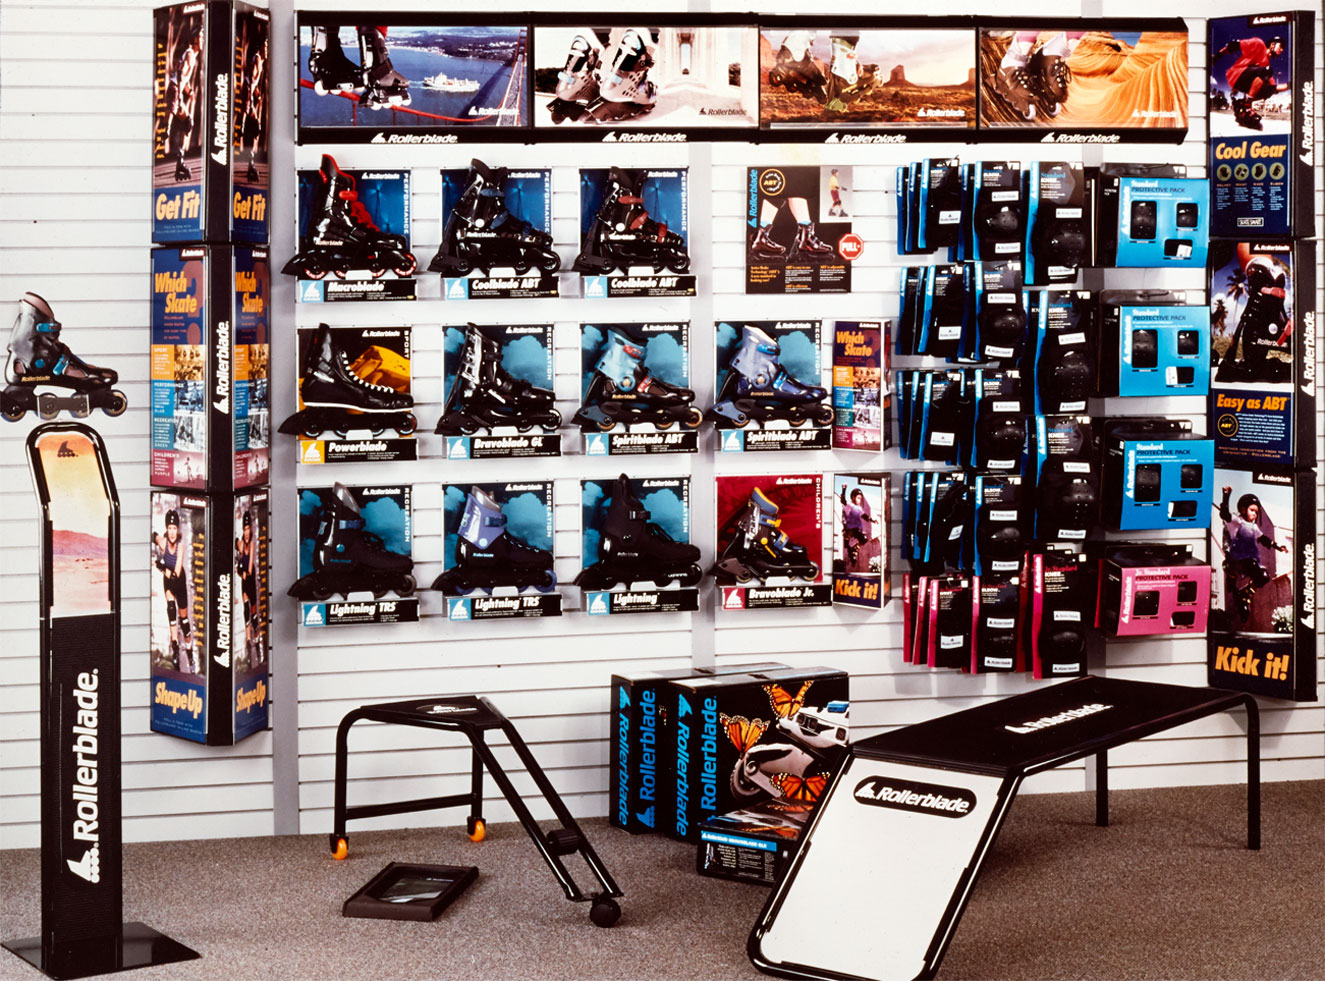 Rollerblade in-store packaging display